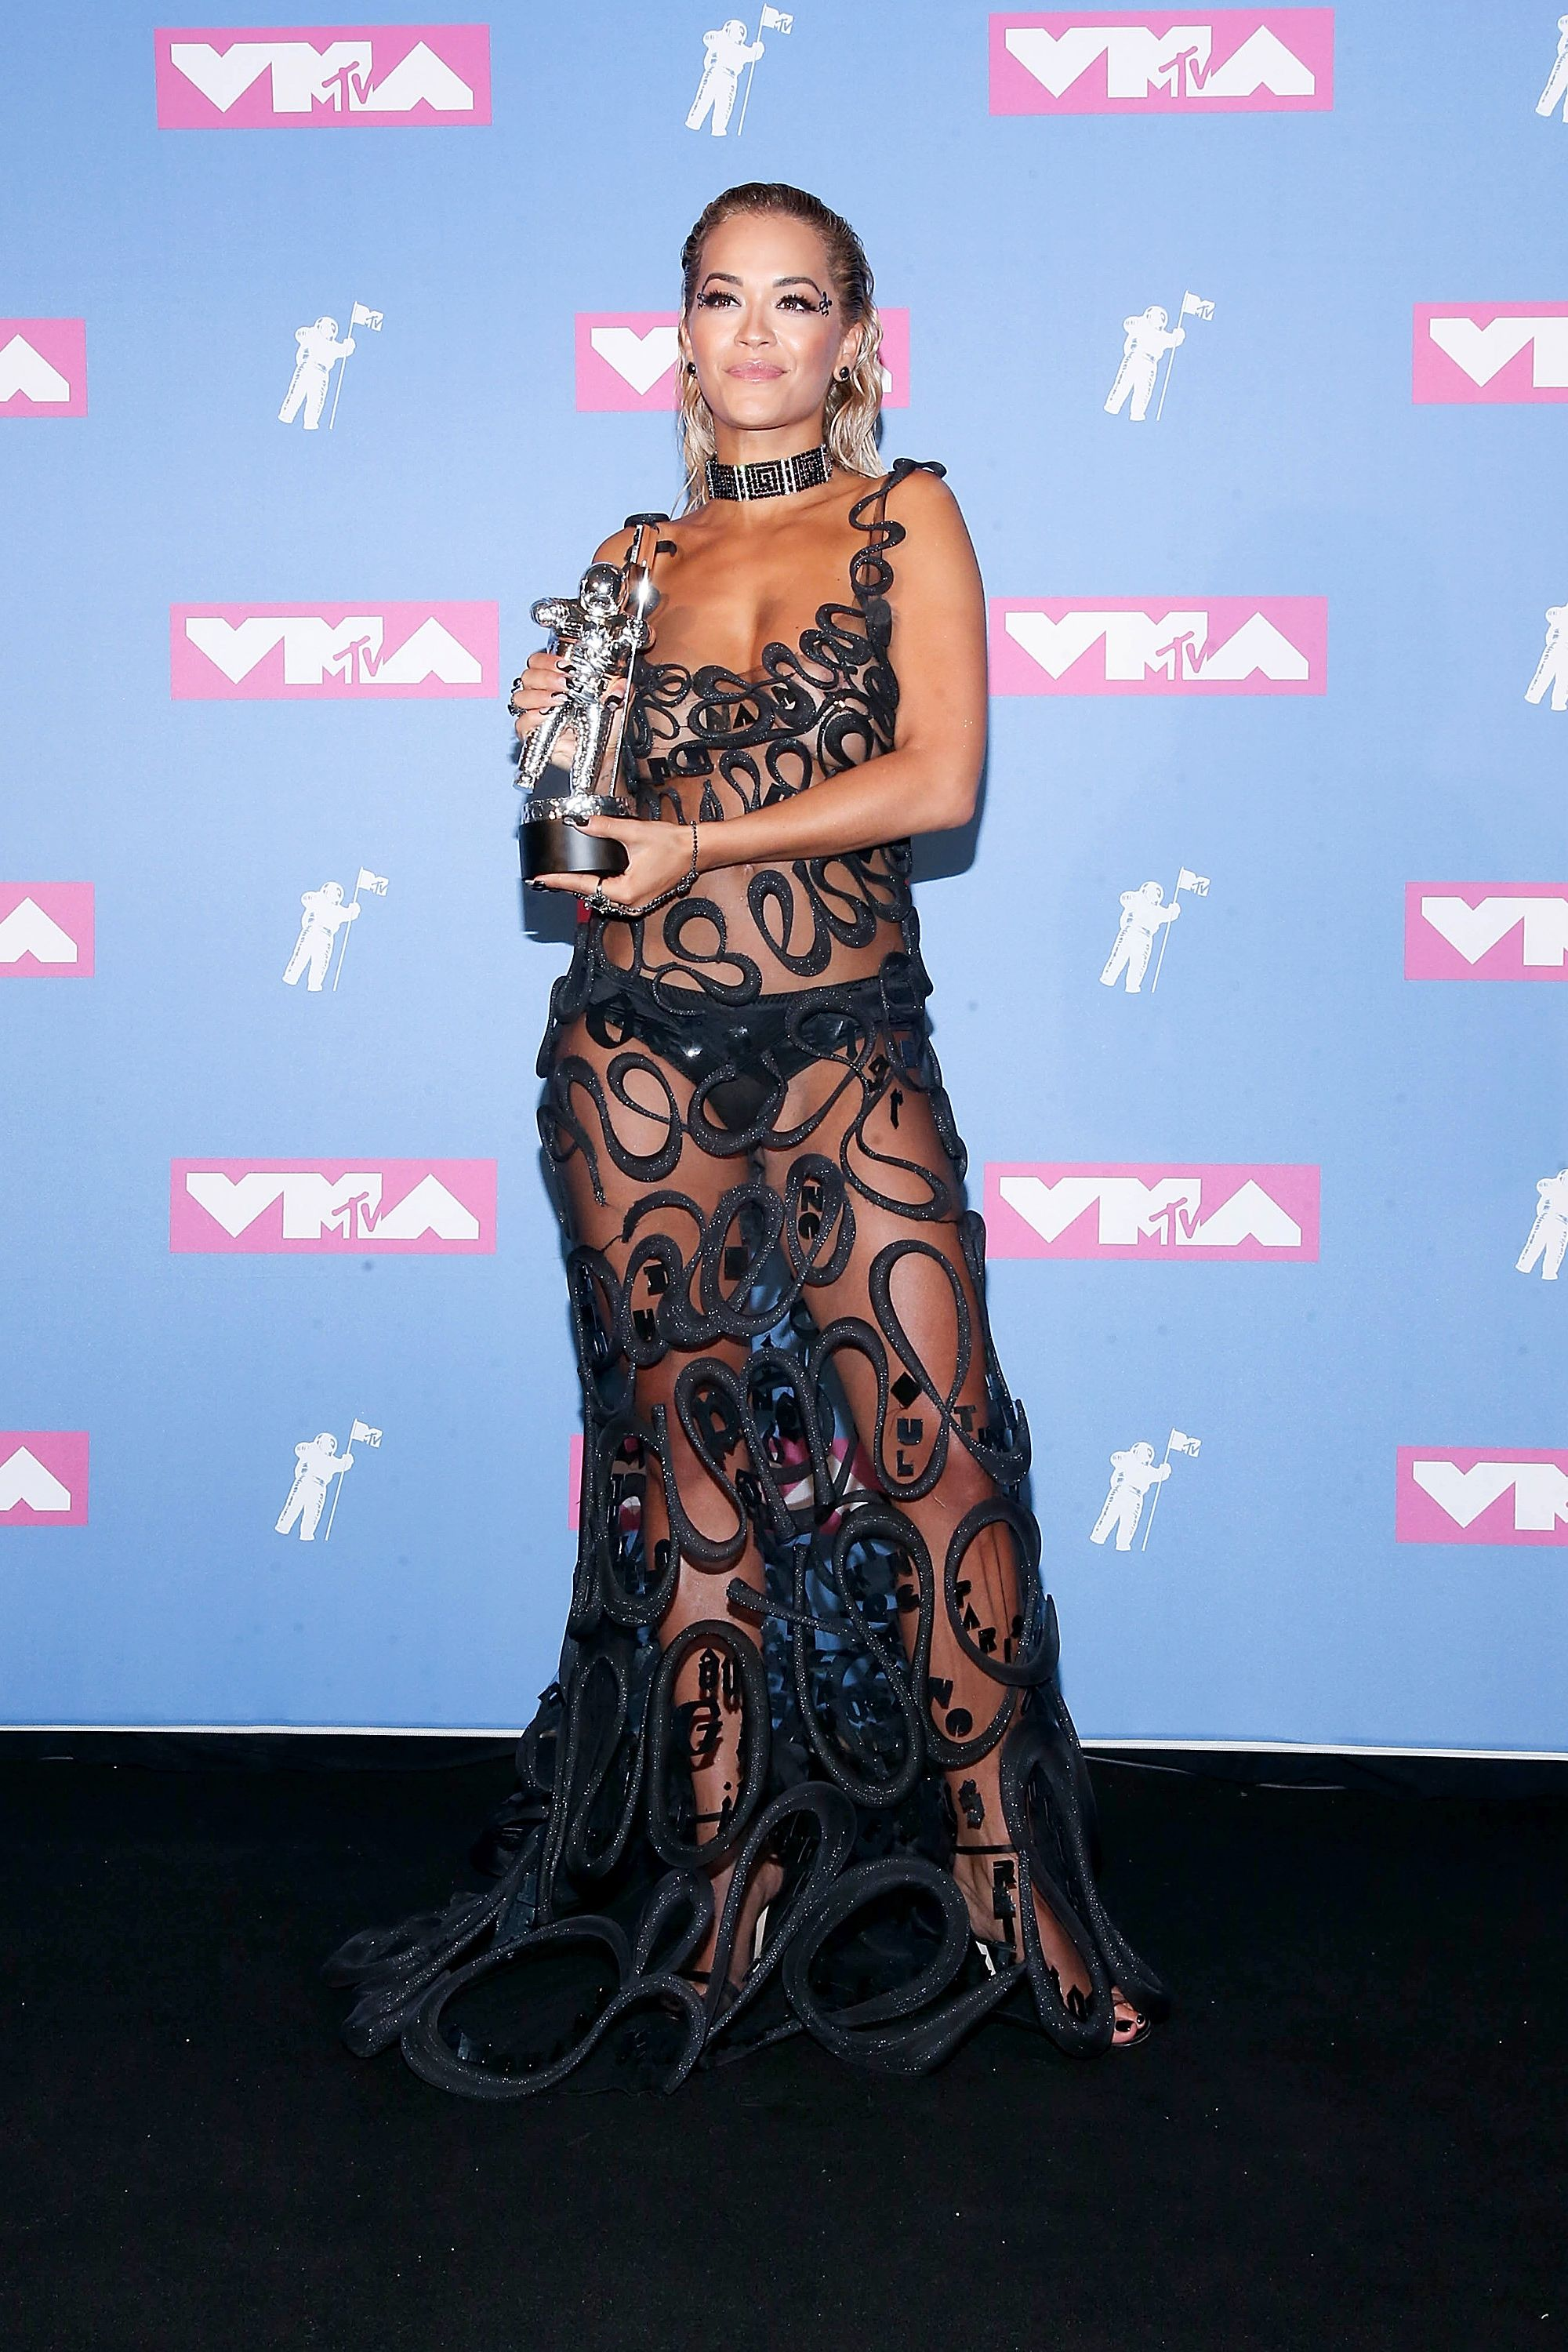 Rita Ora Ora also attended the MTV Video Music Awards that same night. She wore a swirly patterned dress from Fleur du Mal that left little to the imagination.